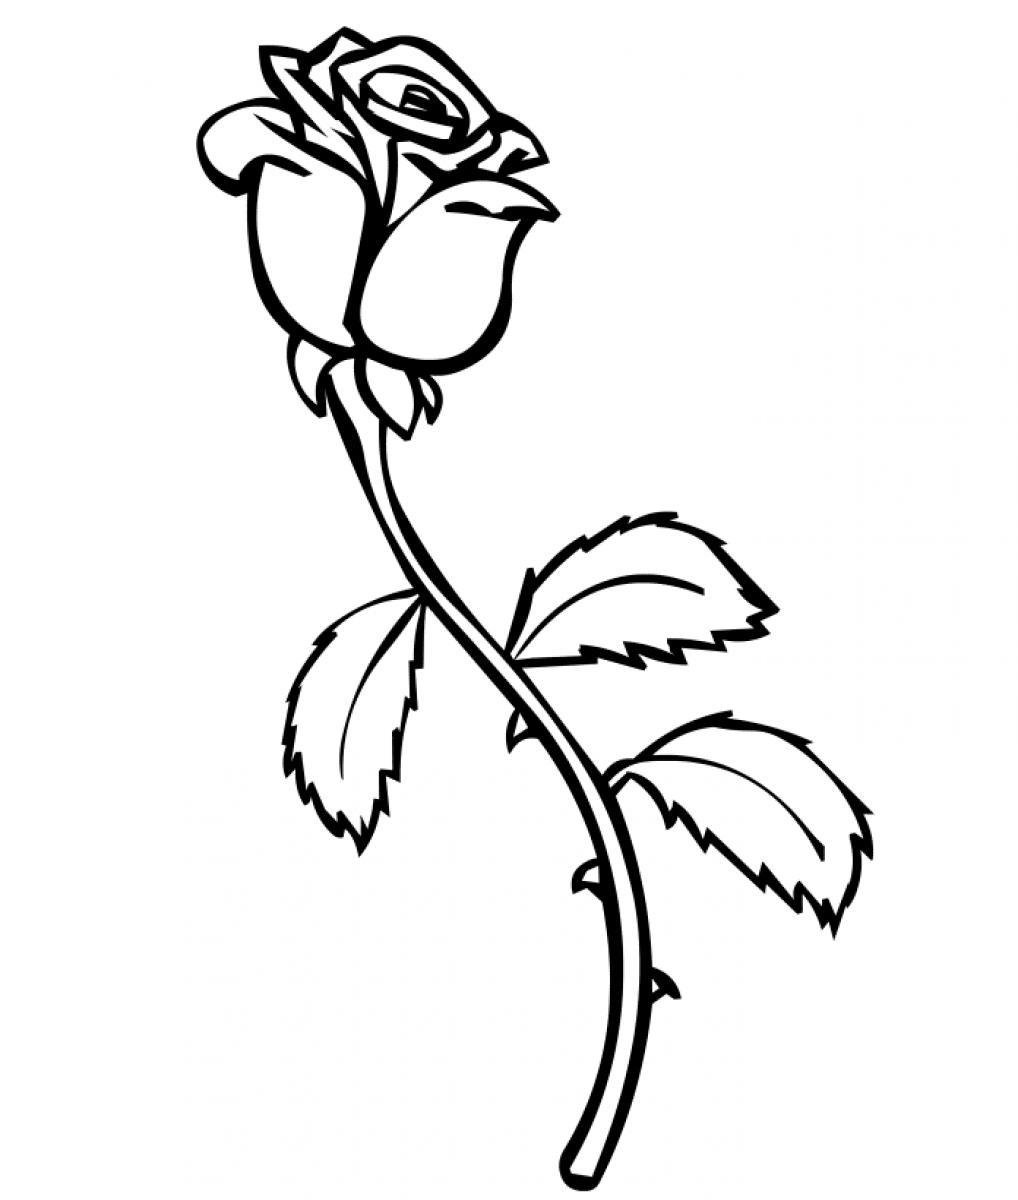 1018x1200 Rose Coloring Page Luxury Free Printable Roses Coloring Pages